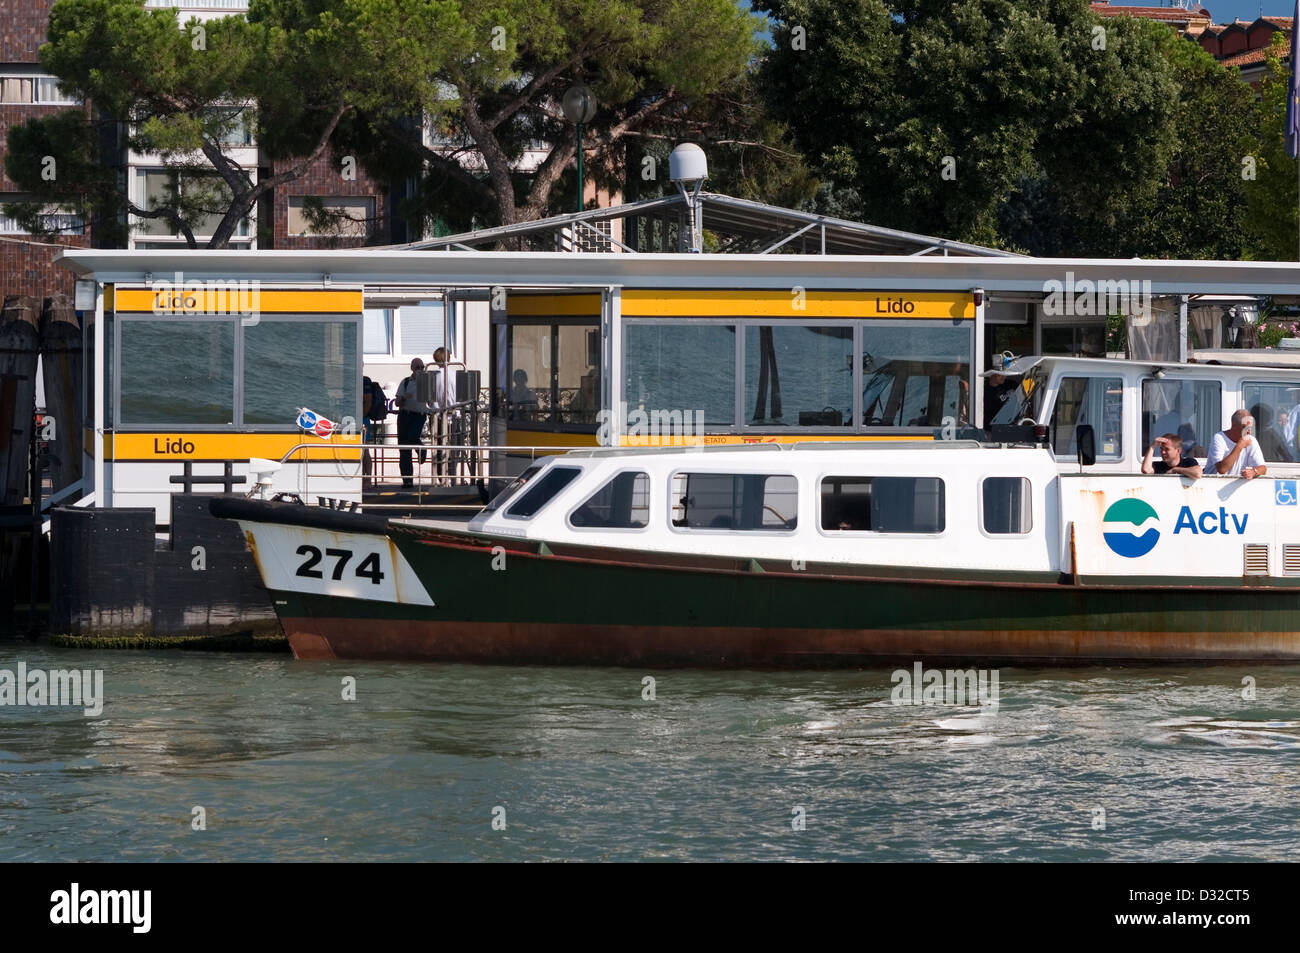 A vaporetto (water-bus) at the Lido stop, Lido, Venice, Italy. - Stock Image